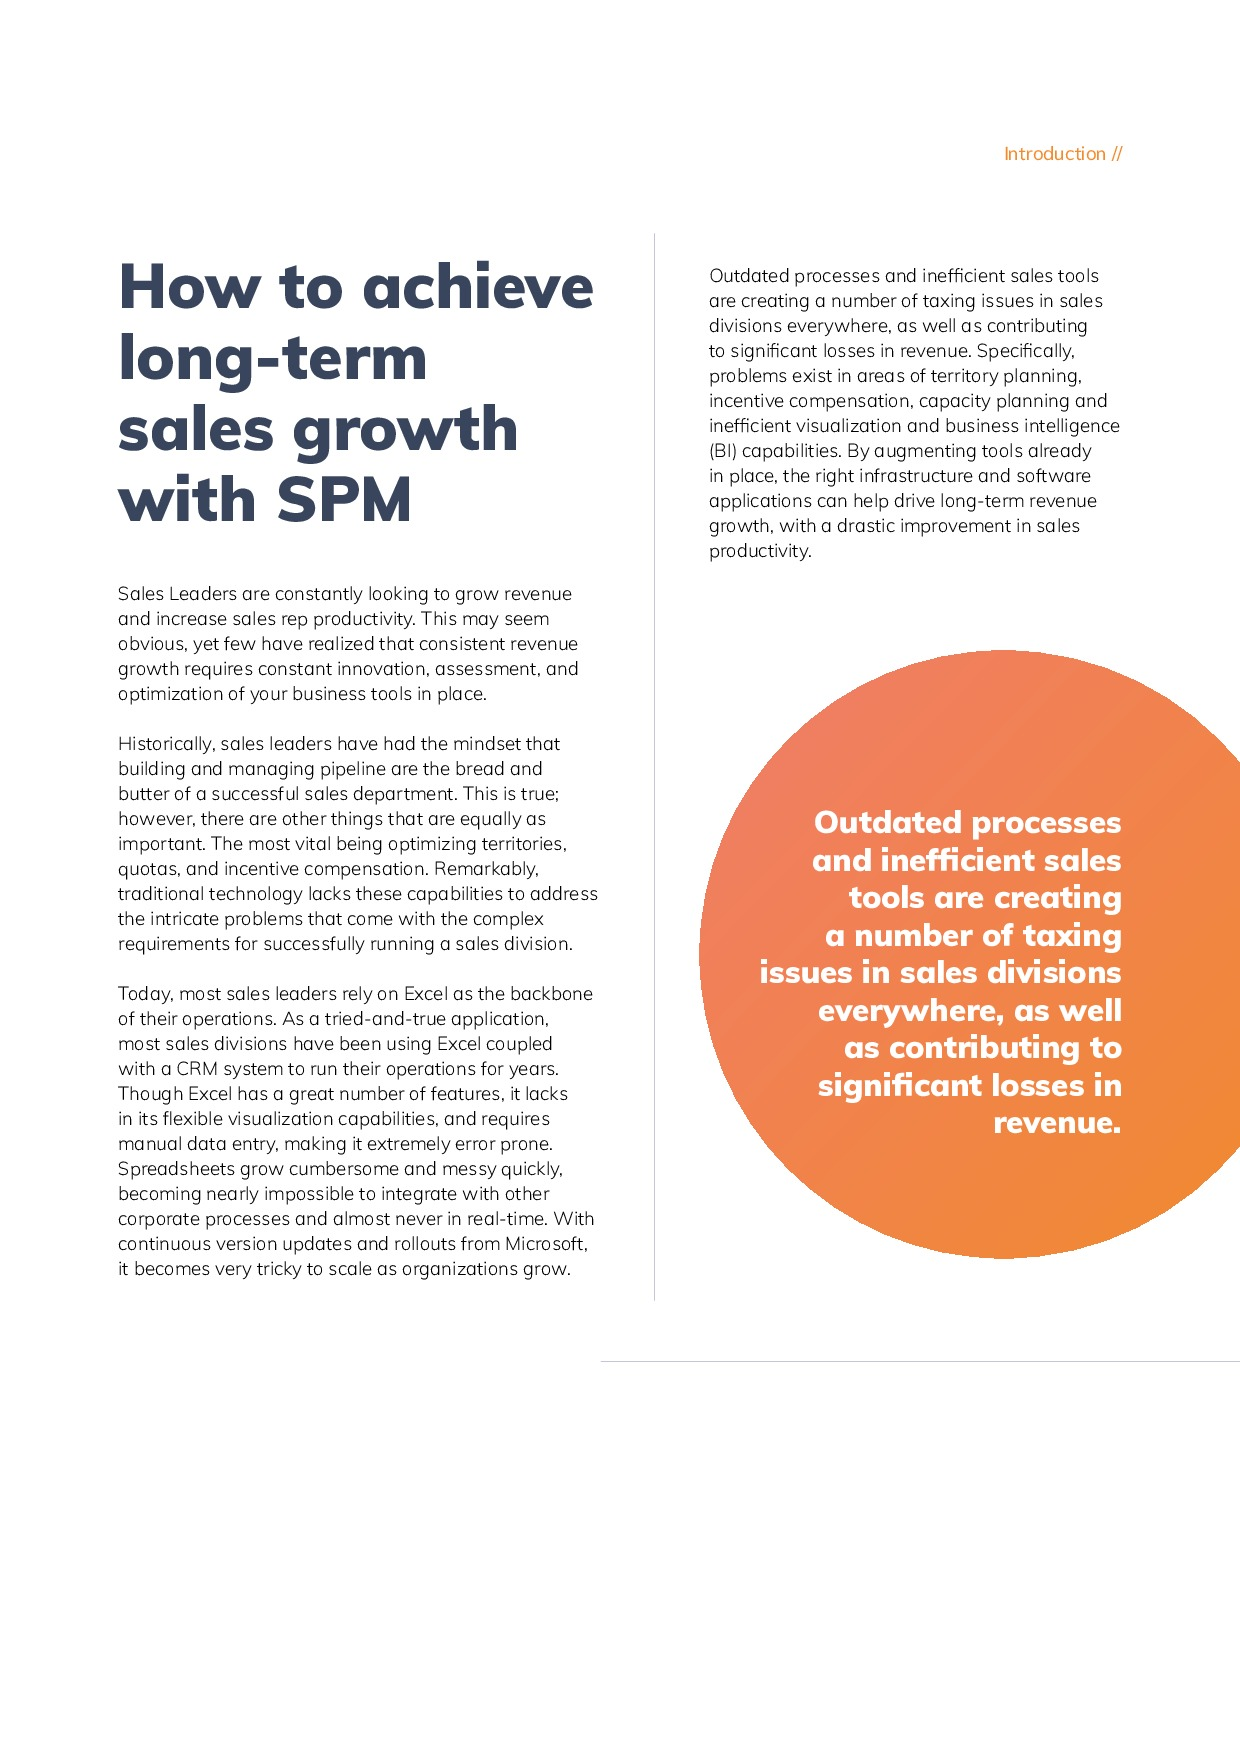 How to achieve long-term sales growth with SPM | Page 3